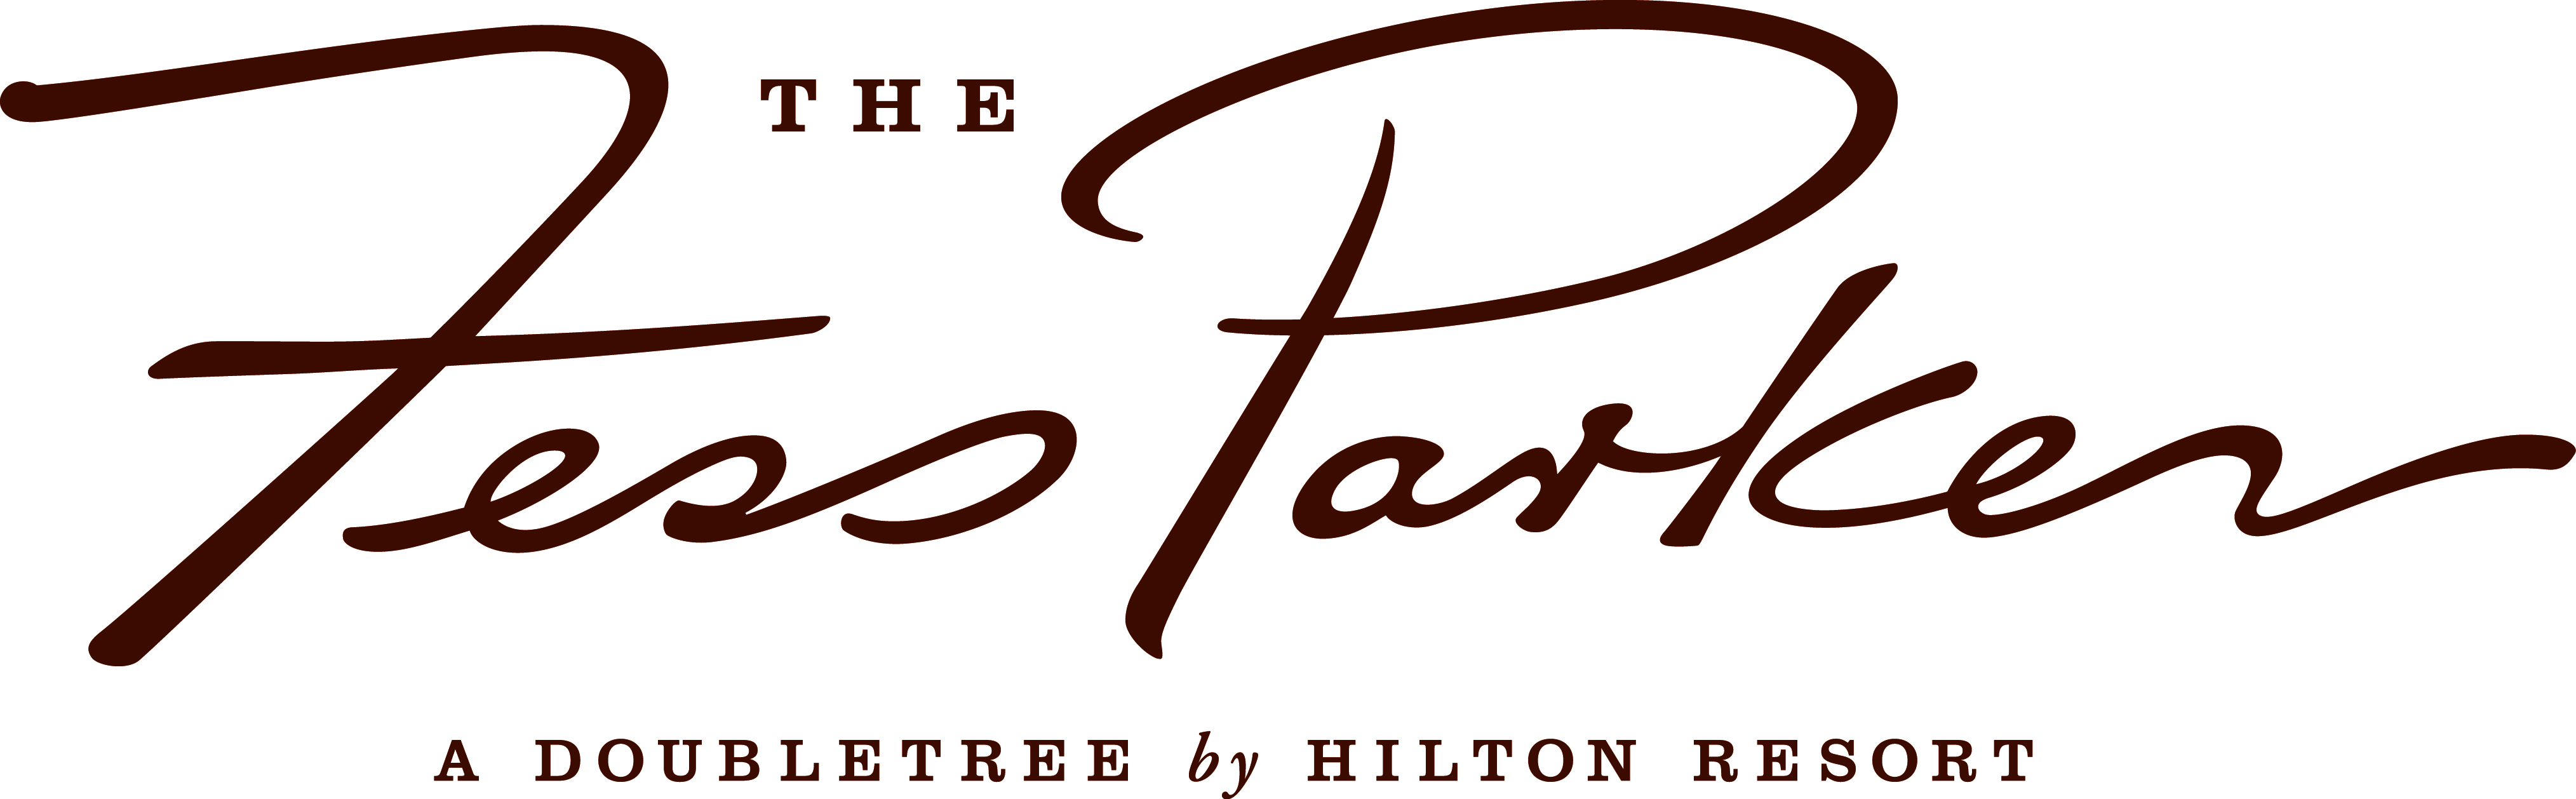 The Fess Parker - A Doubletree by Hilton Resort logo